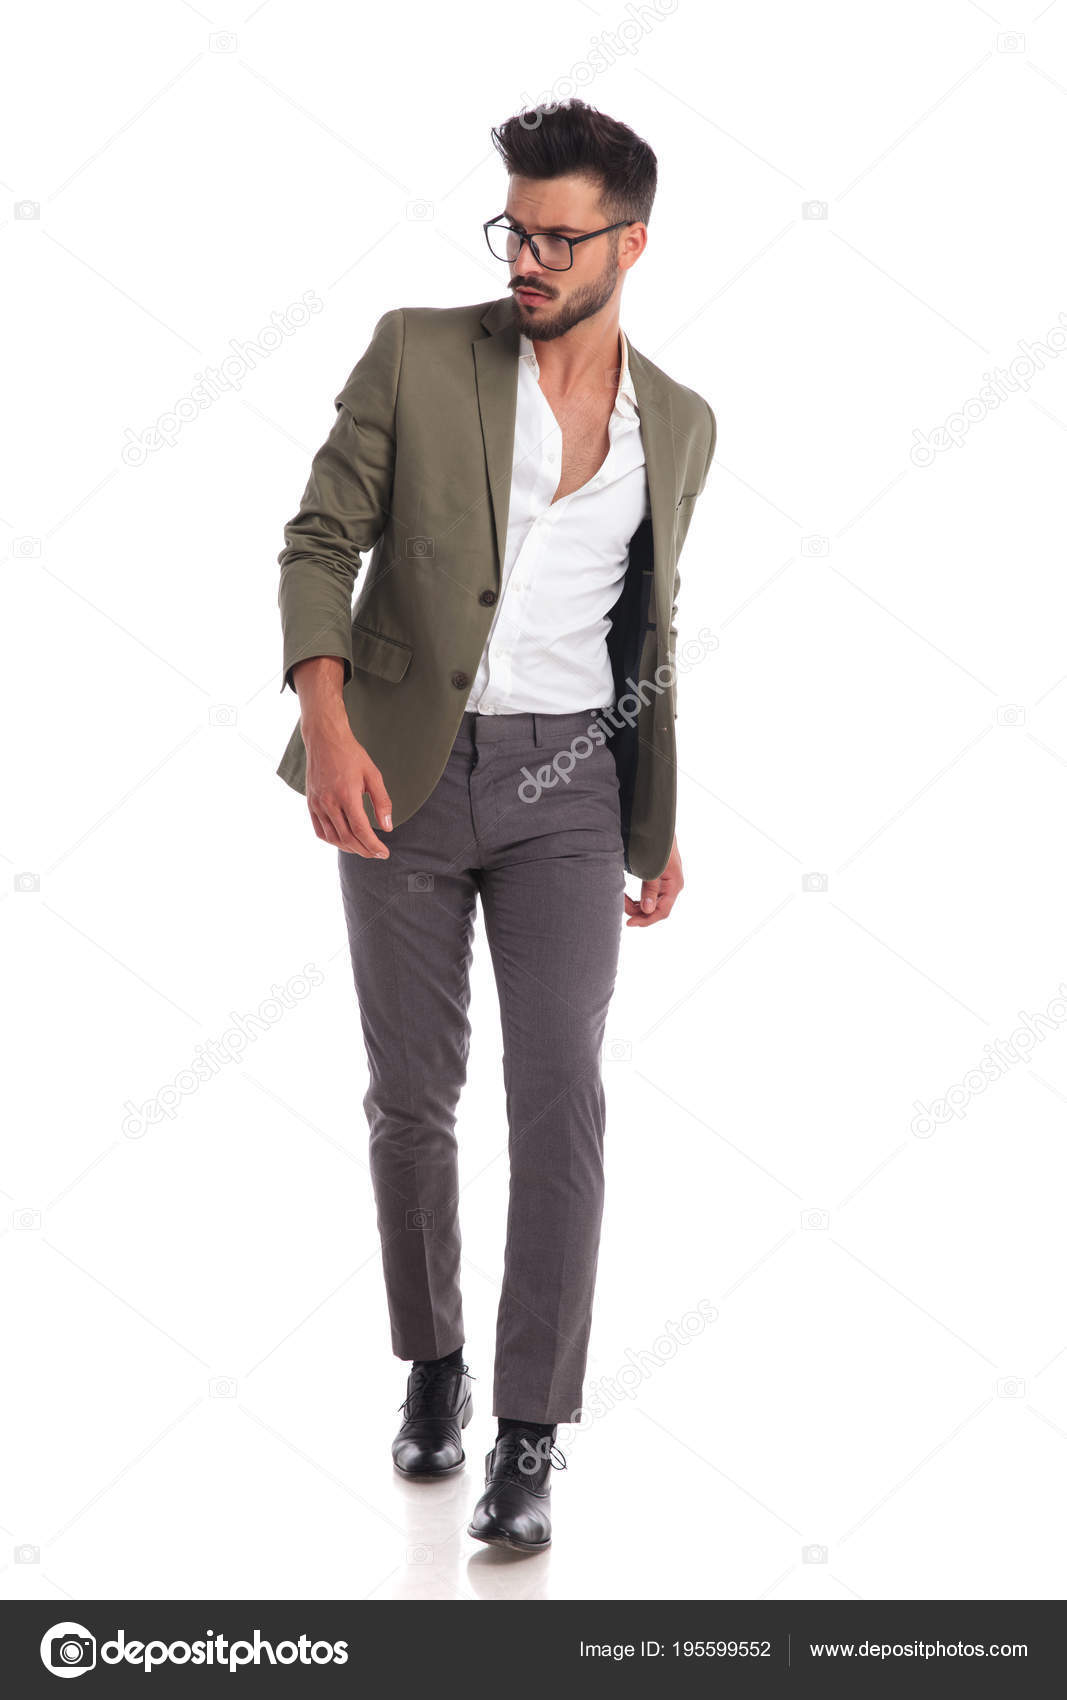 669c6ef21d4c Confident young man with glasses walking on white background and looking to  side while wearing a elegant green suit jacket — Photo by ...